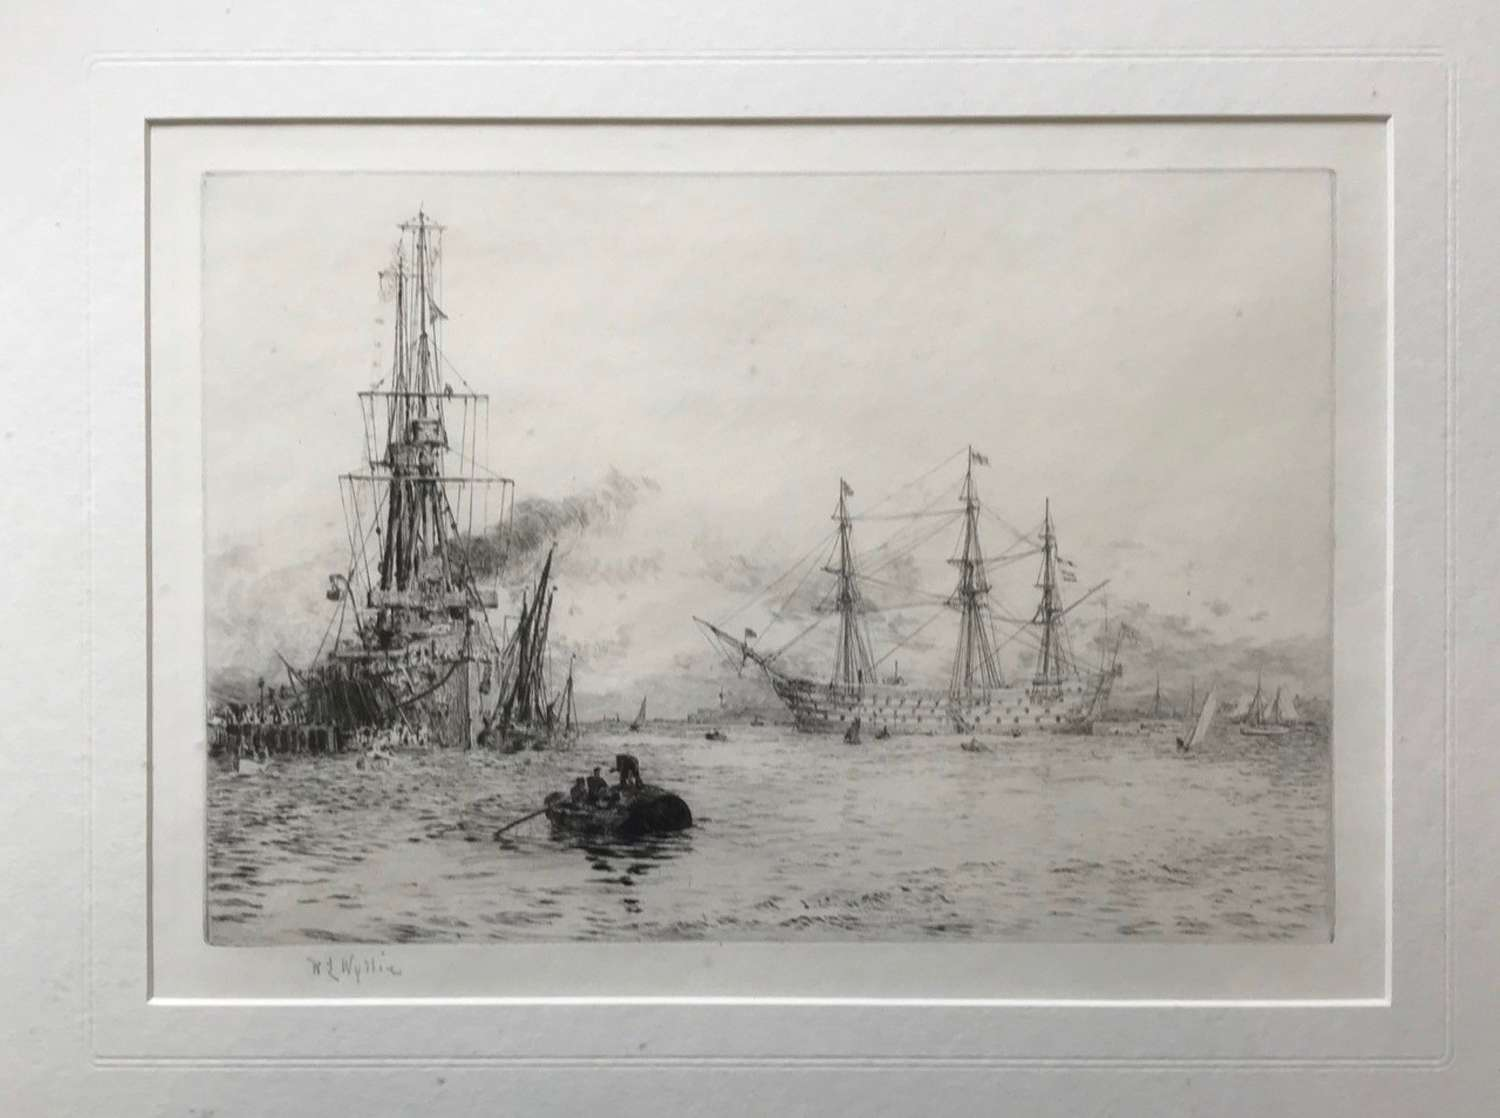 Etching by W.L.Wyllie RA 'HMS Invincible & HMS Victory' circa 1920